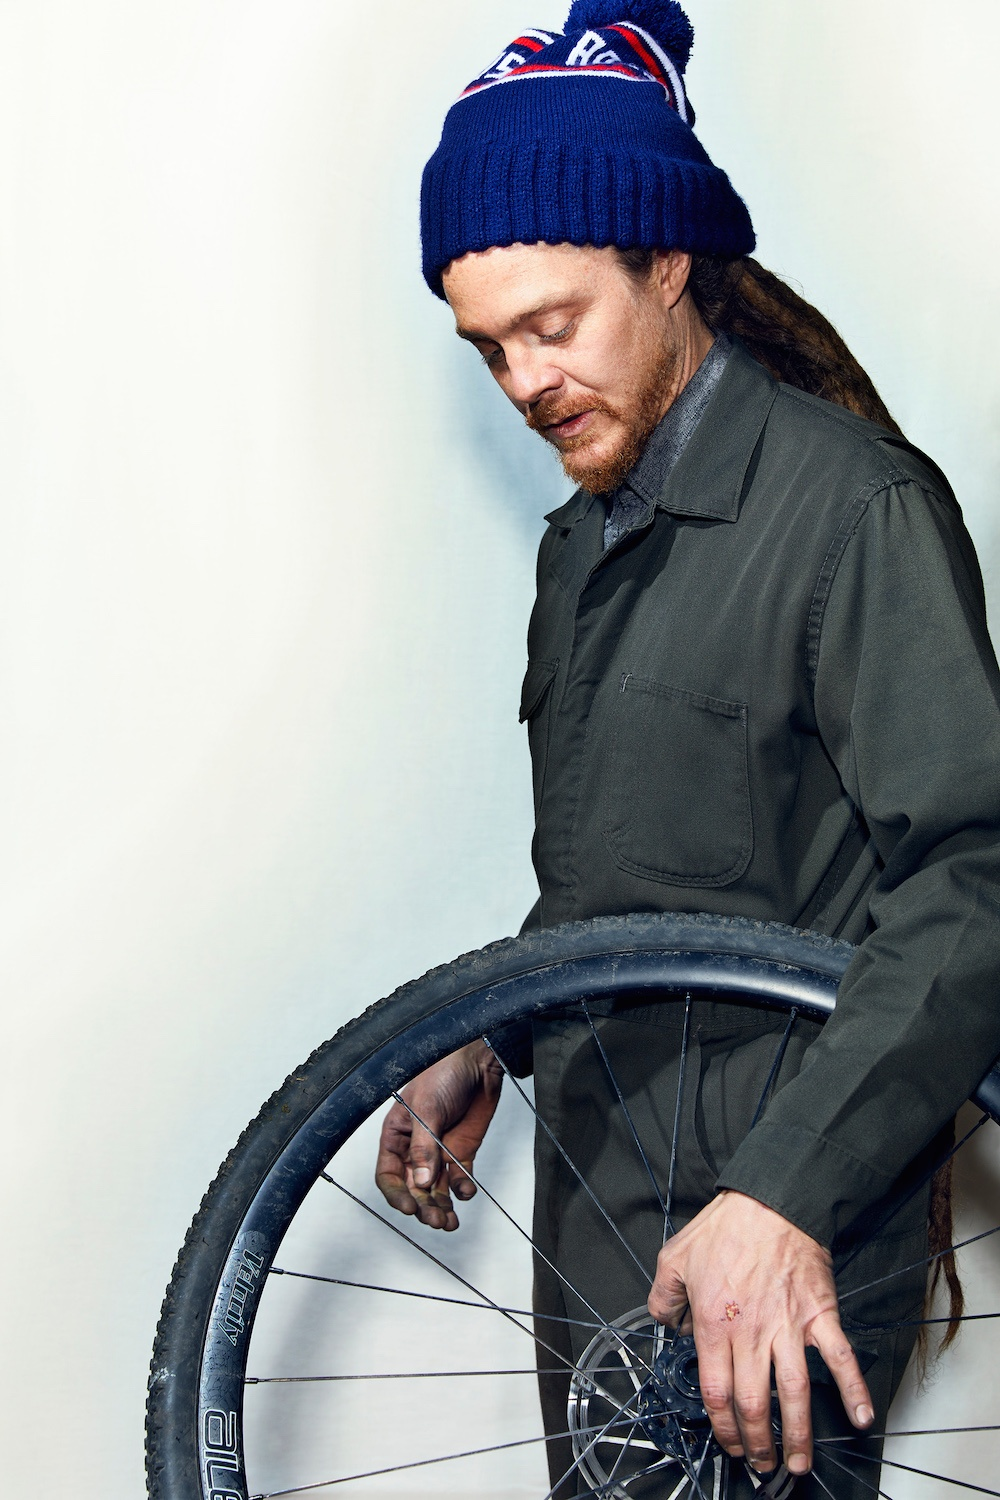 Bike-mechanic-holding-wheel-one-hand.jpg